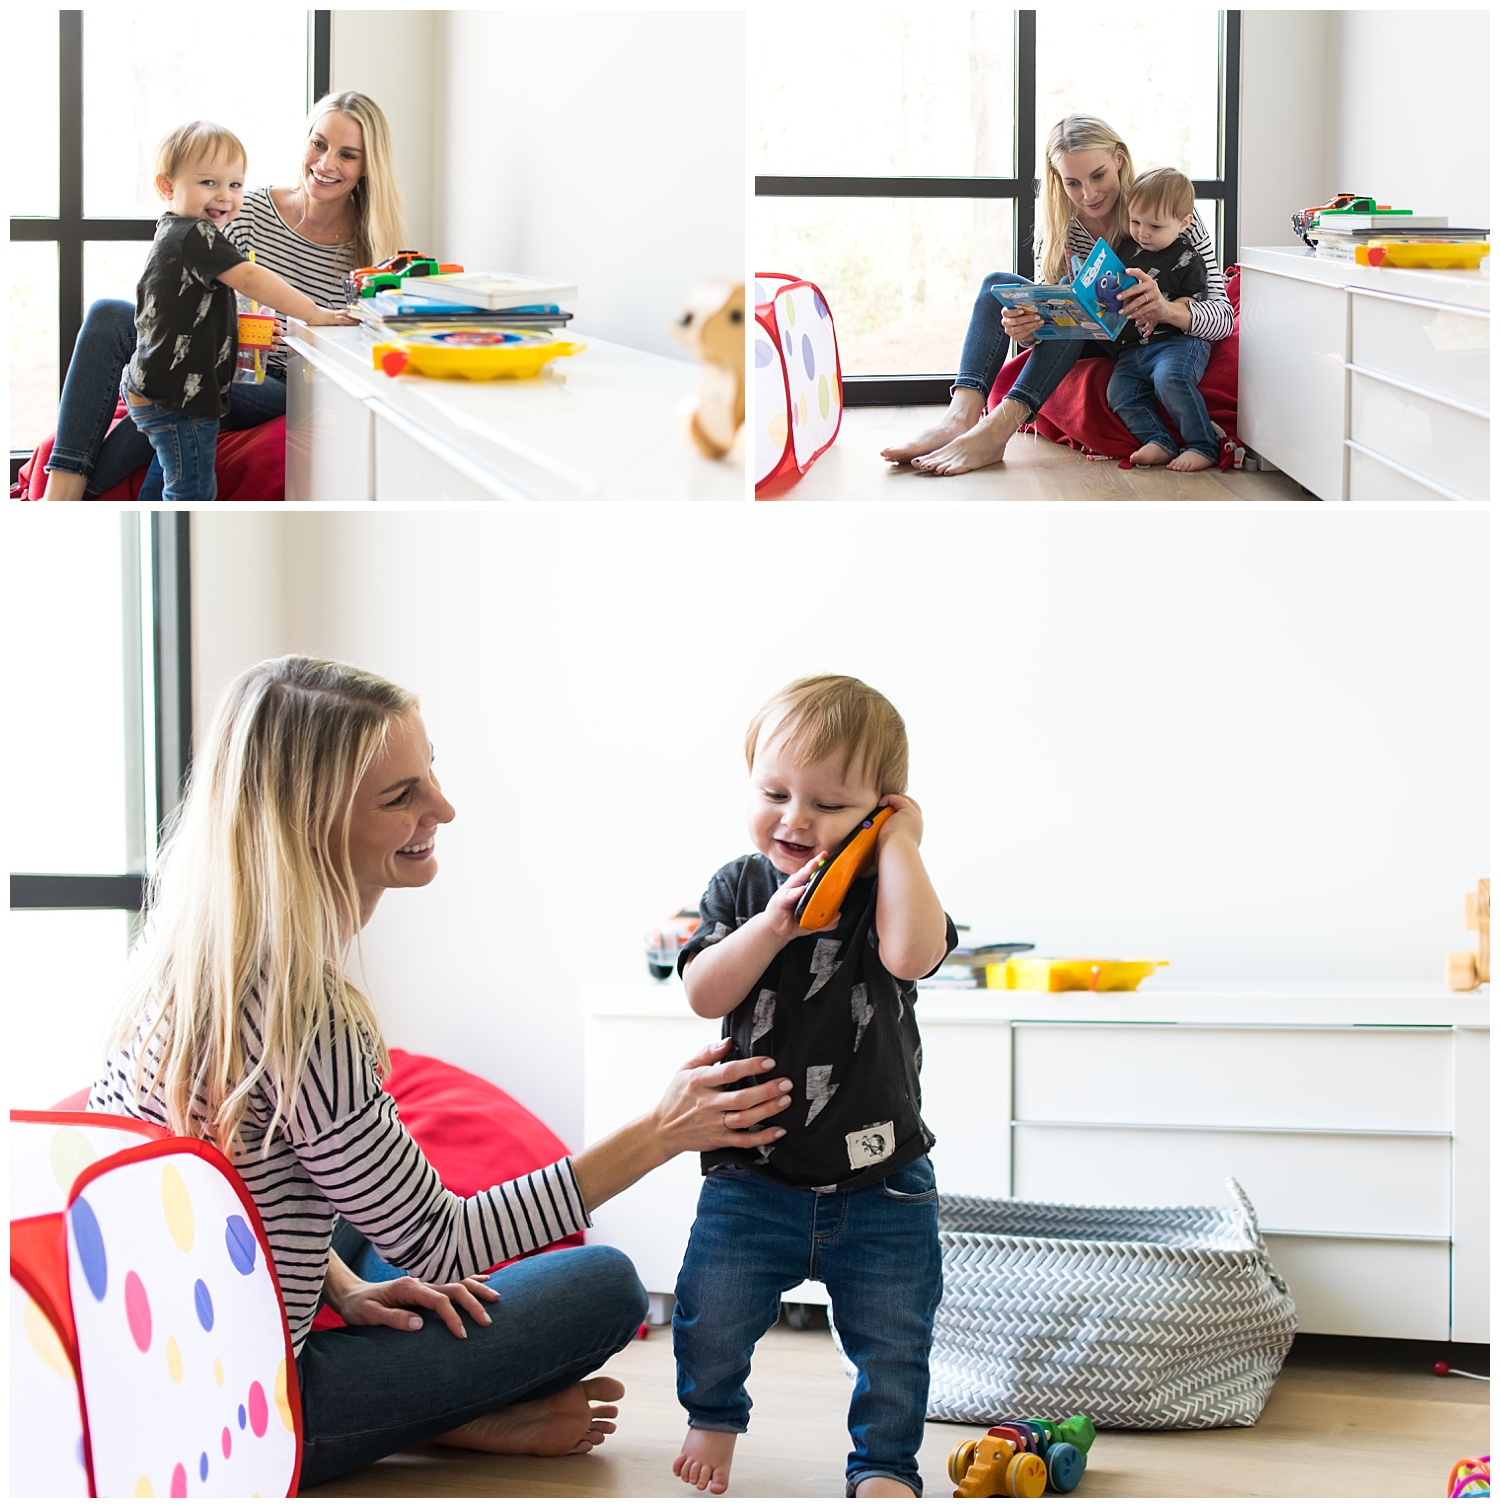 this is a small collage of a few photos of a mother and her toddler son playing in the playroom. they are reading a book and the child is playing on a toy phone.